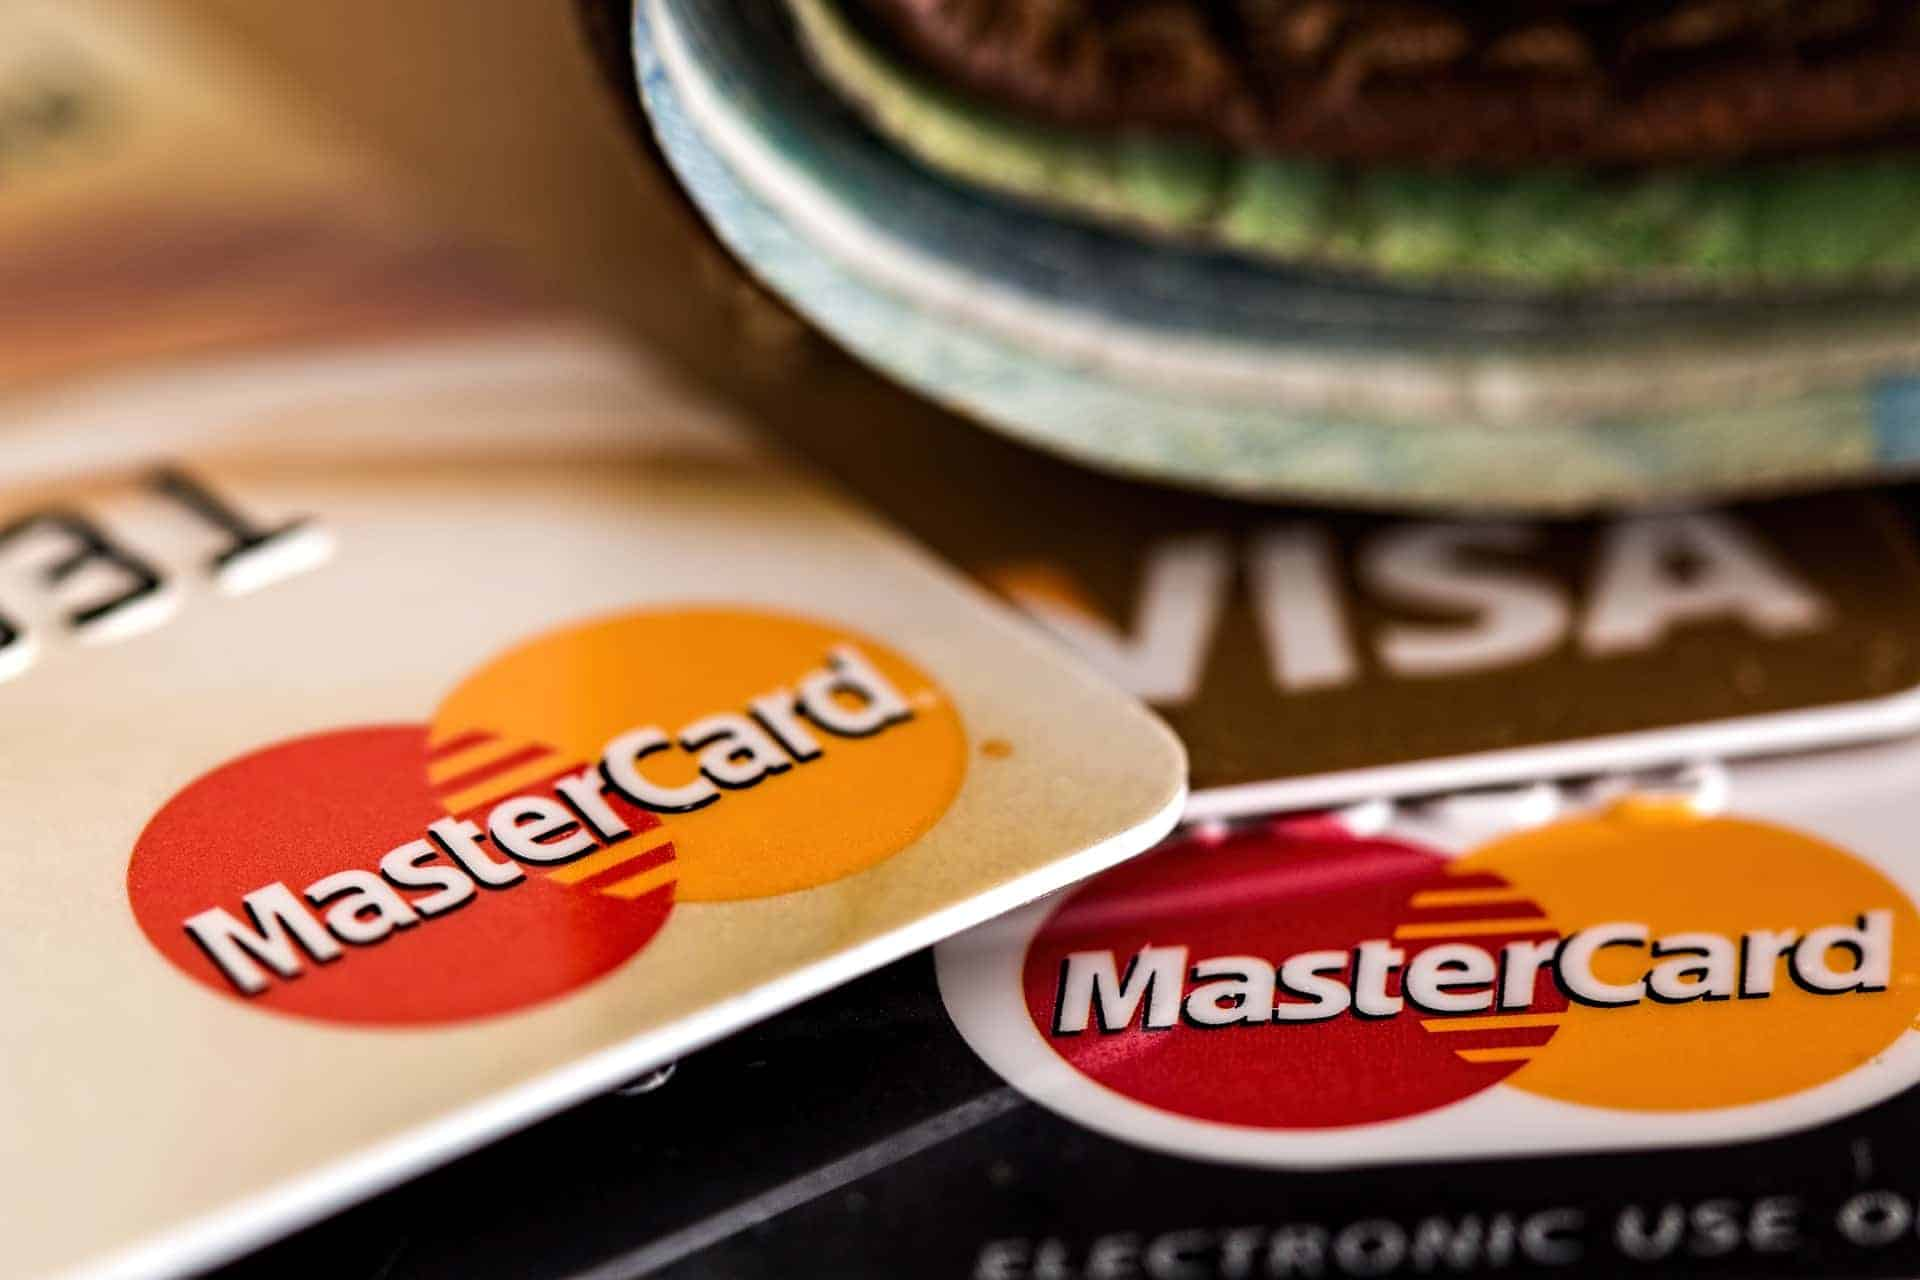 beginner credit cards in Canada